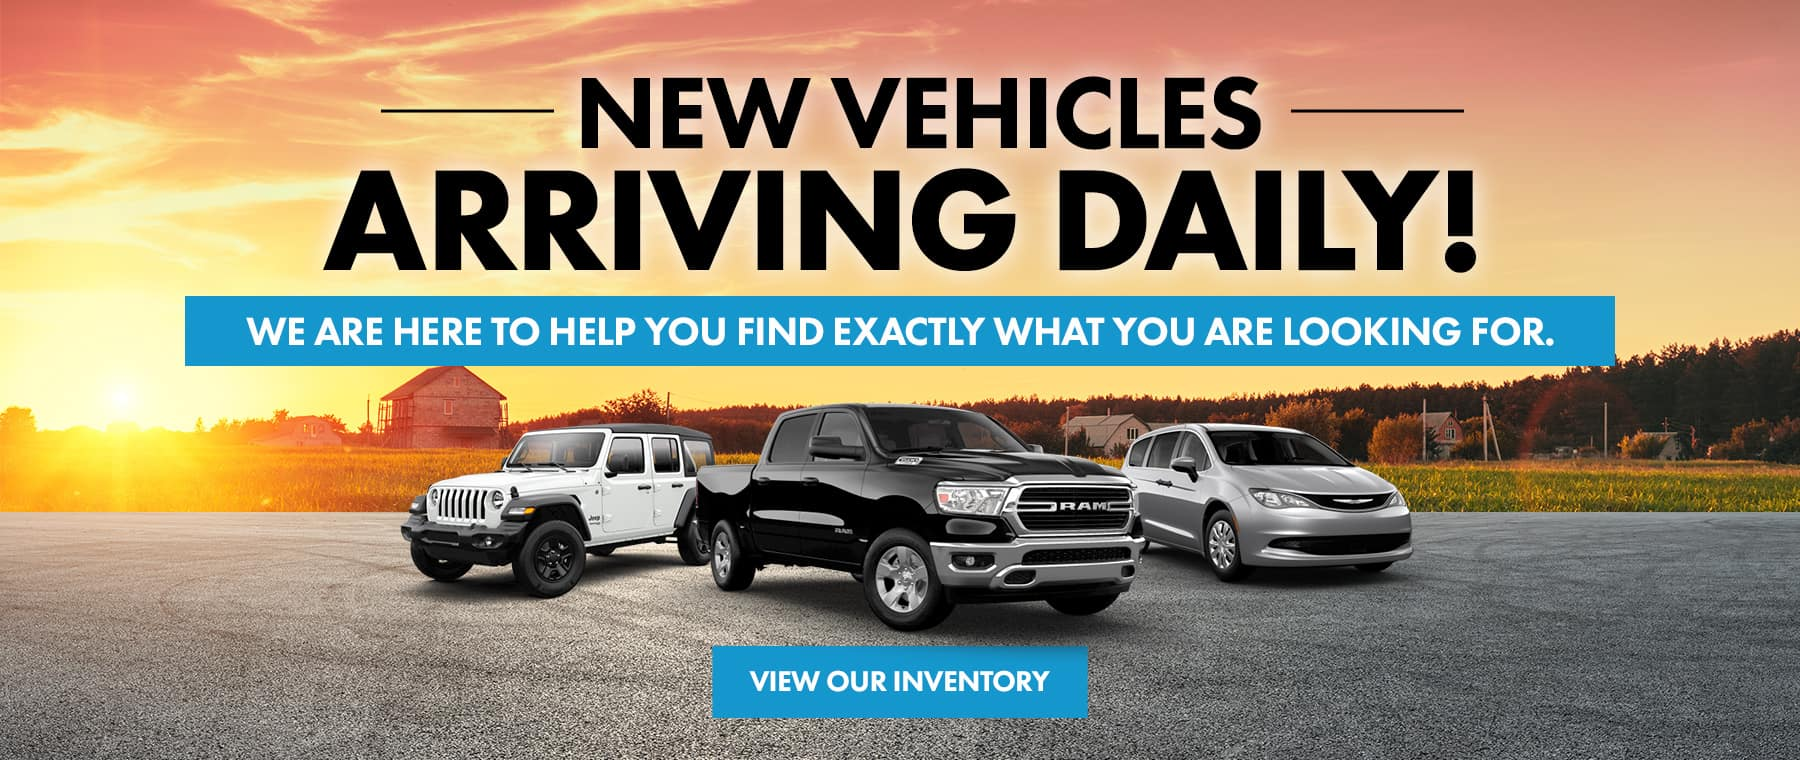 New Vehicles Arriving Daily!